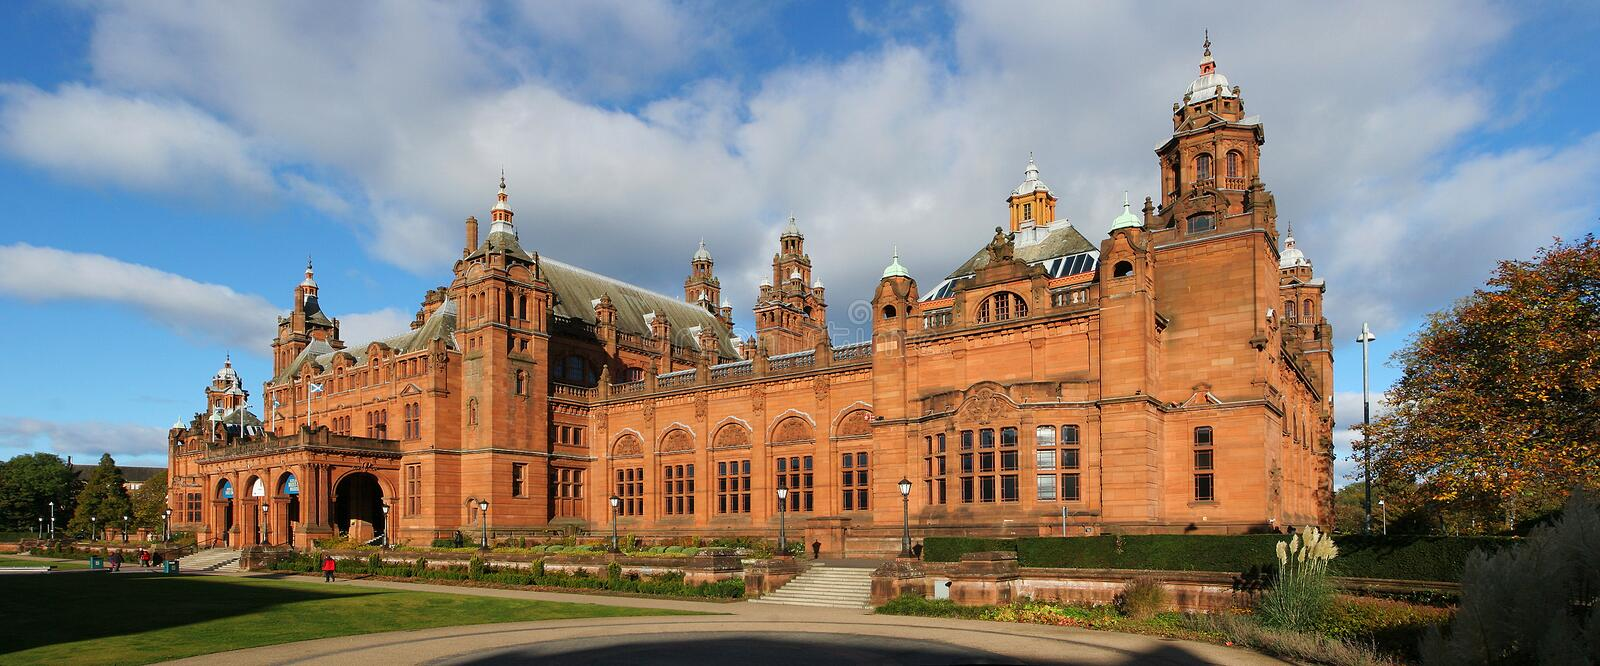 Kelvingrove Art Gallery and Museum. The Kelvingrove Art Gallery and Museum is a museum and art gallery in Glasgow, Scotland. The building houses one of Europes stock photo